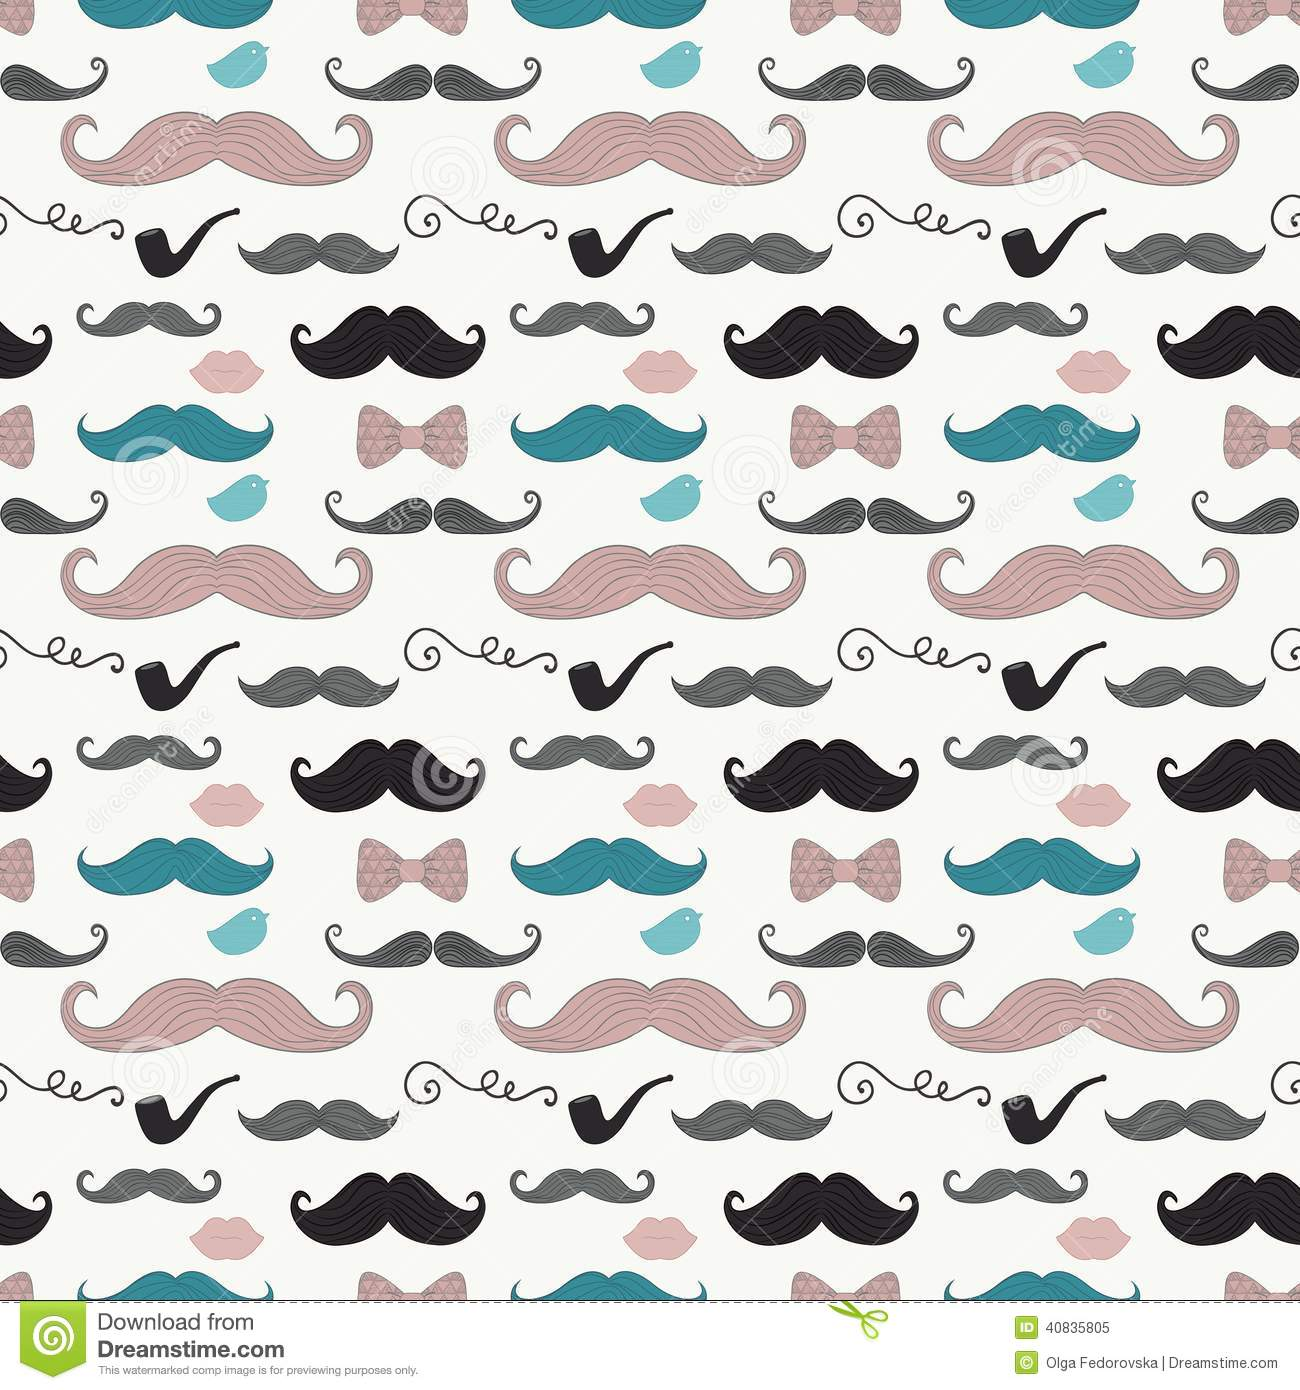 Colourful vintage seamless background pattern with cute retro hipster